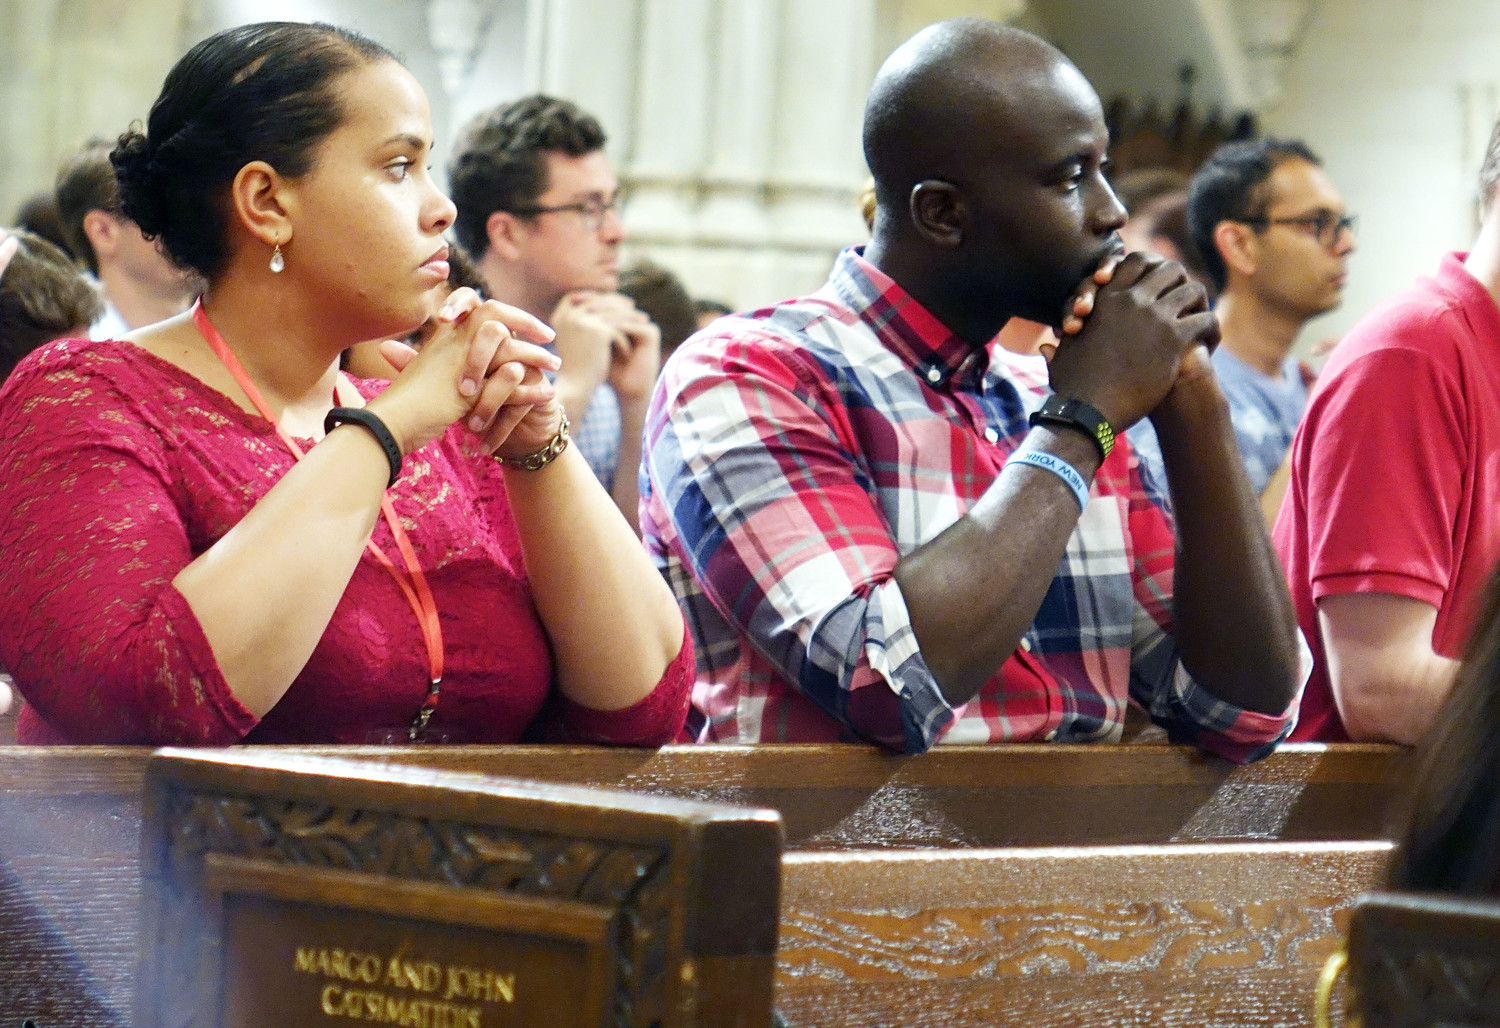 Marcia Correa and Fidelis Idoko kneel during the Liturgy of the Eucharist. T